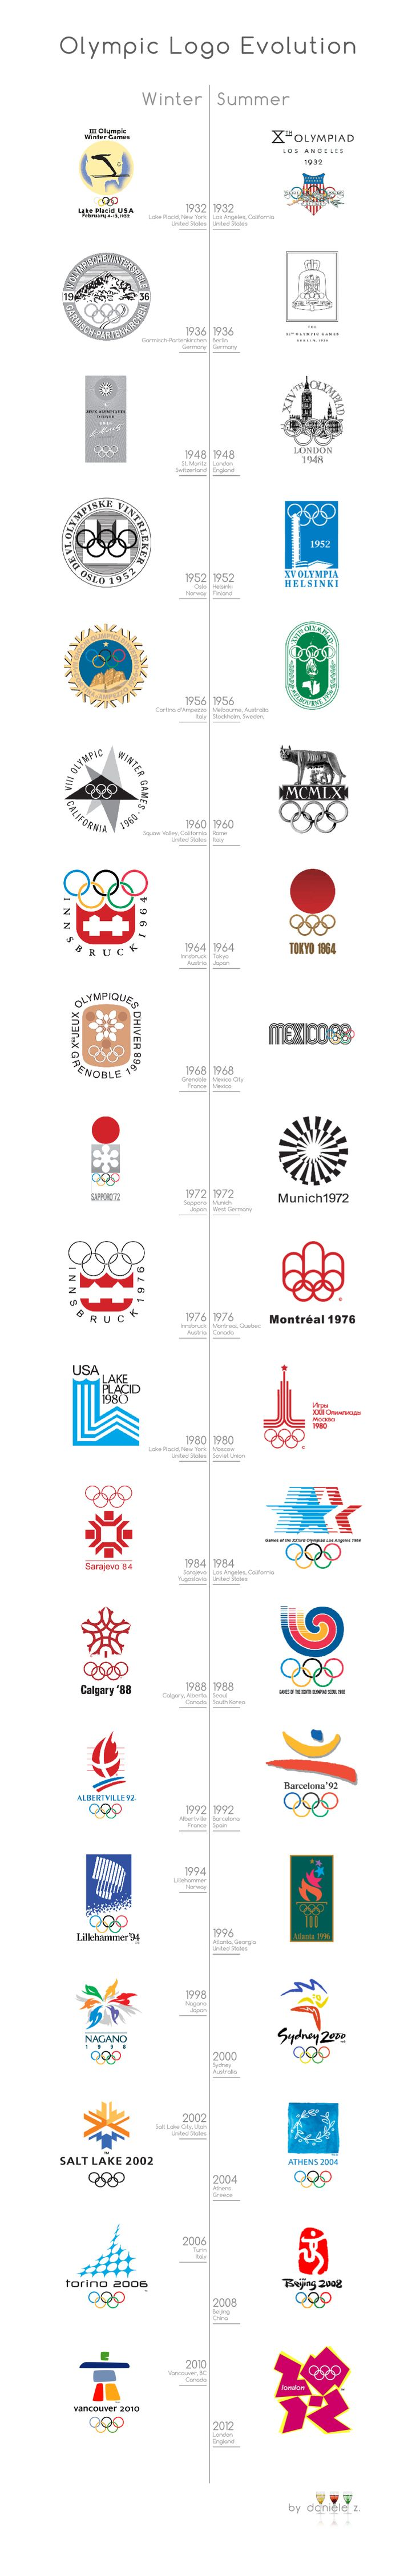 the history and evolution of the olympic games Due to their long trajectory with the games, great britain's personalised clothing for the olympics has an interesting evolution that is worth studying history of the uk's olympic kit this is why, and also thanks to the rio olympics that are coming up, we've decided to review the evolution of the uk olympic kit throughout the years.